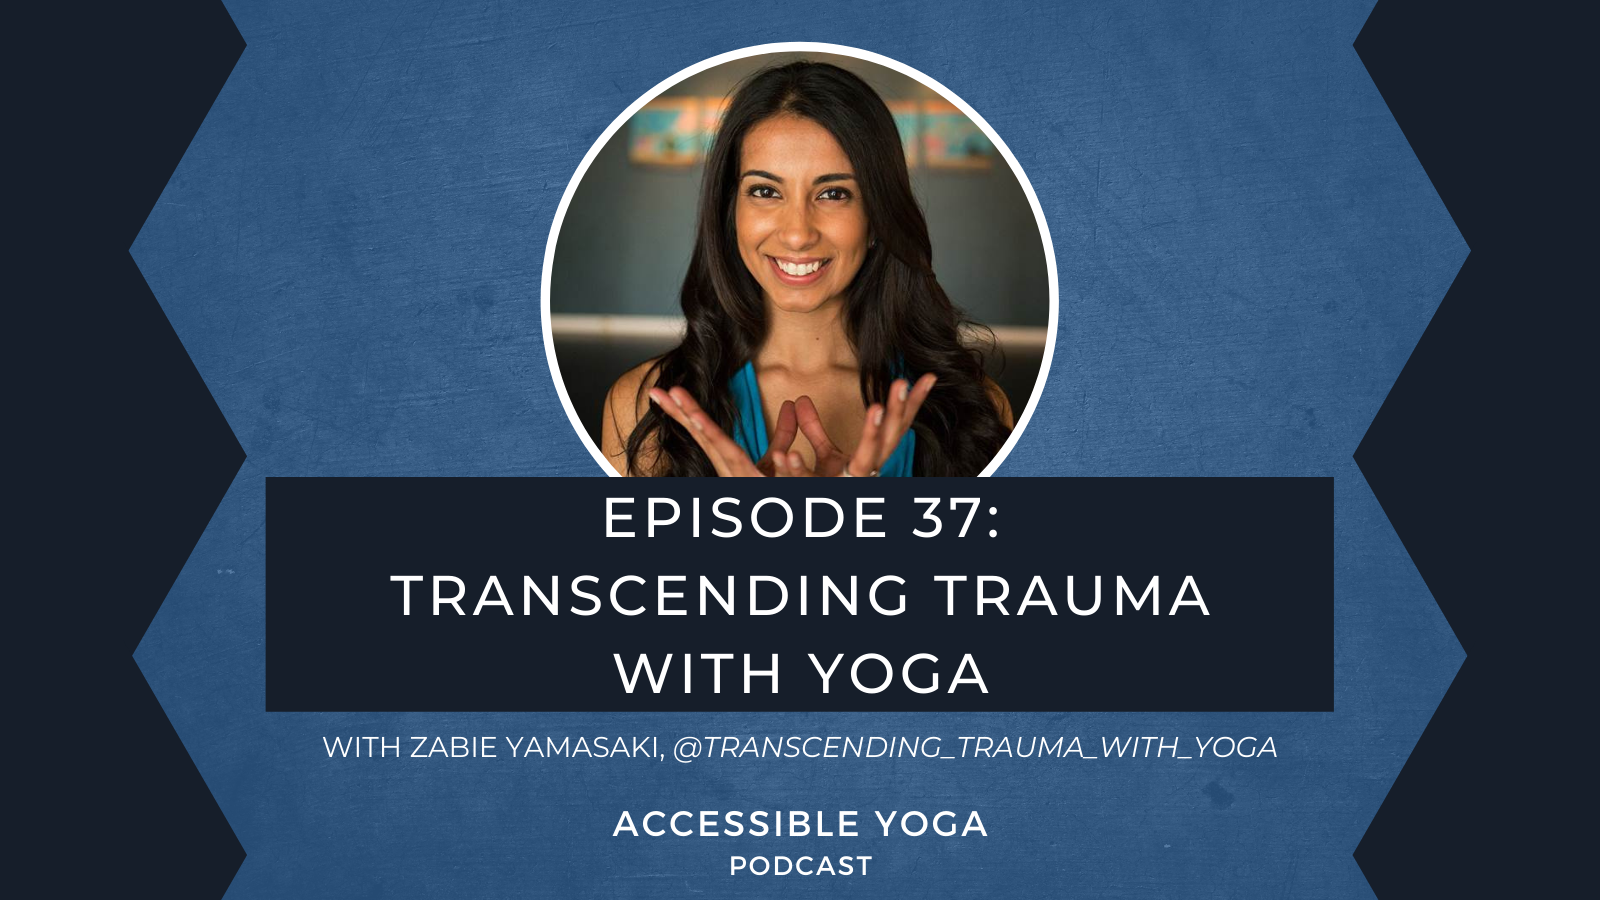 Accessible Yoga Podcast Episode 37